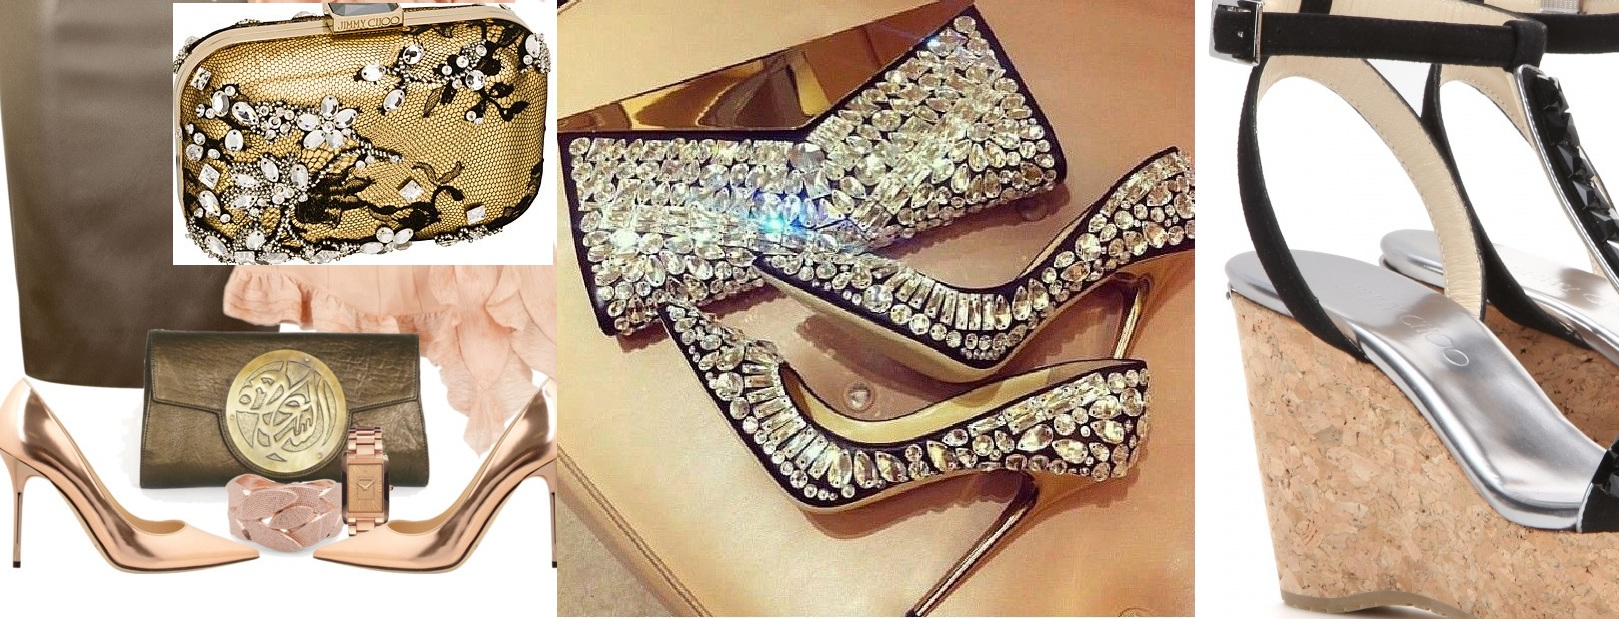 Jimmy Choo Latest Bags Shoes Amp Accessories Collection